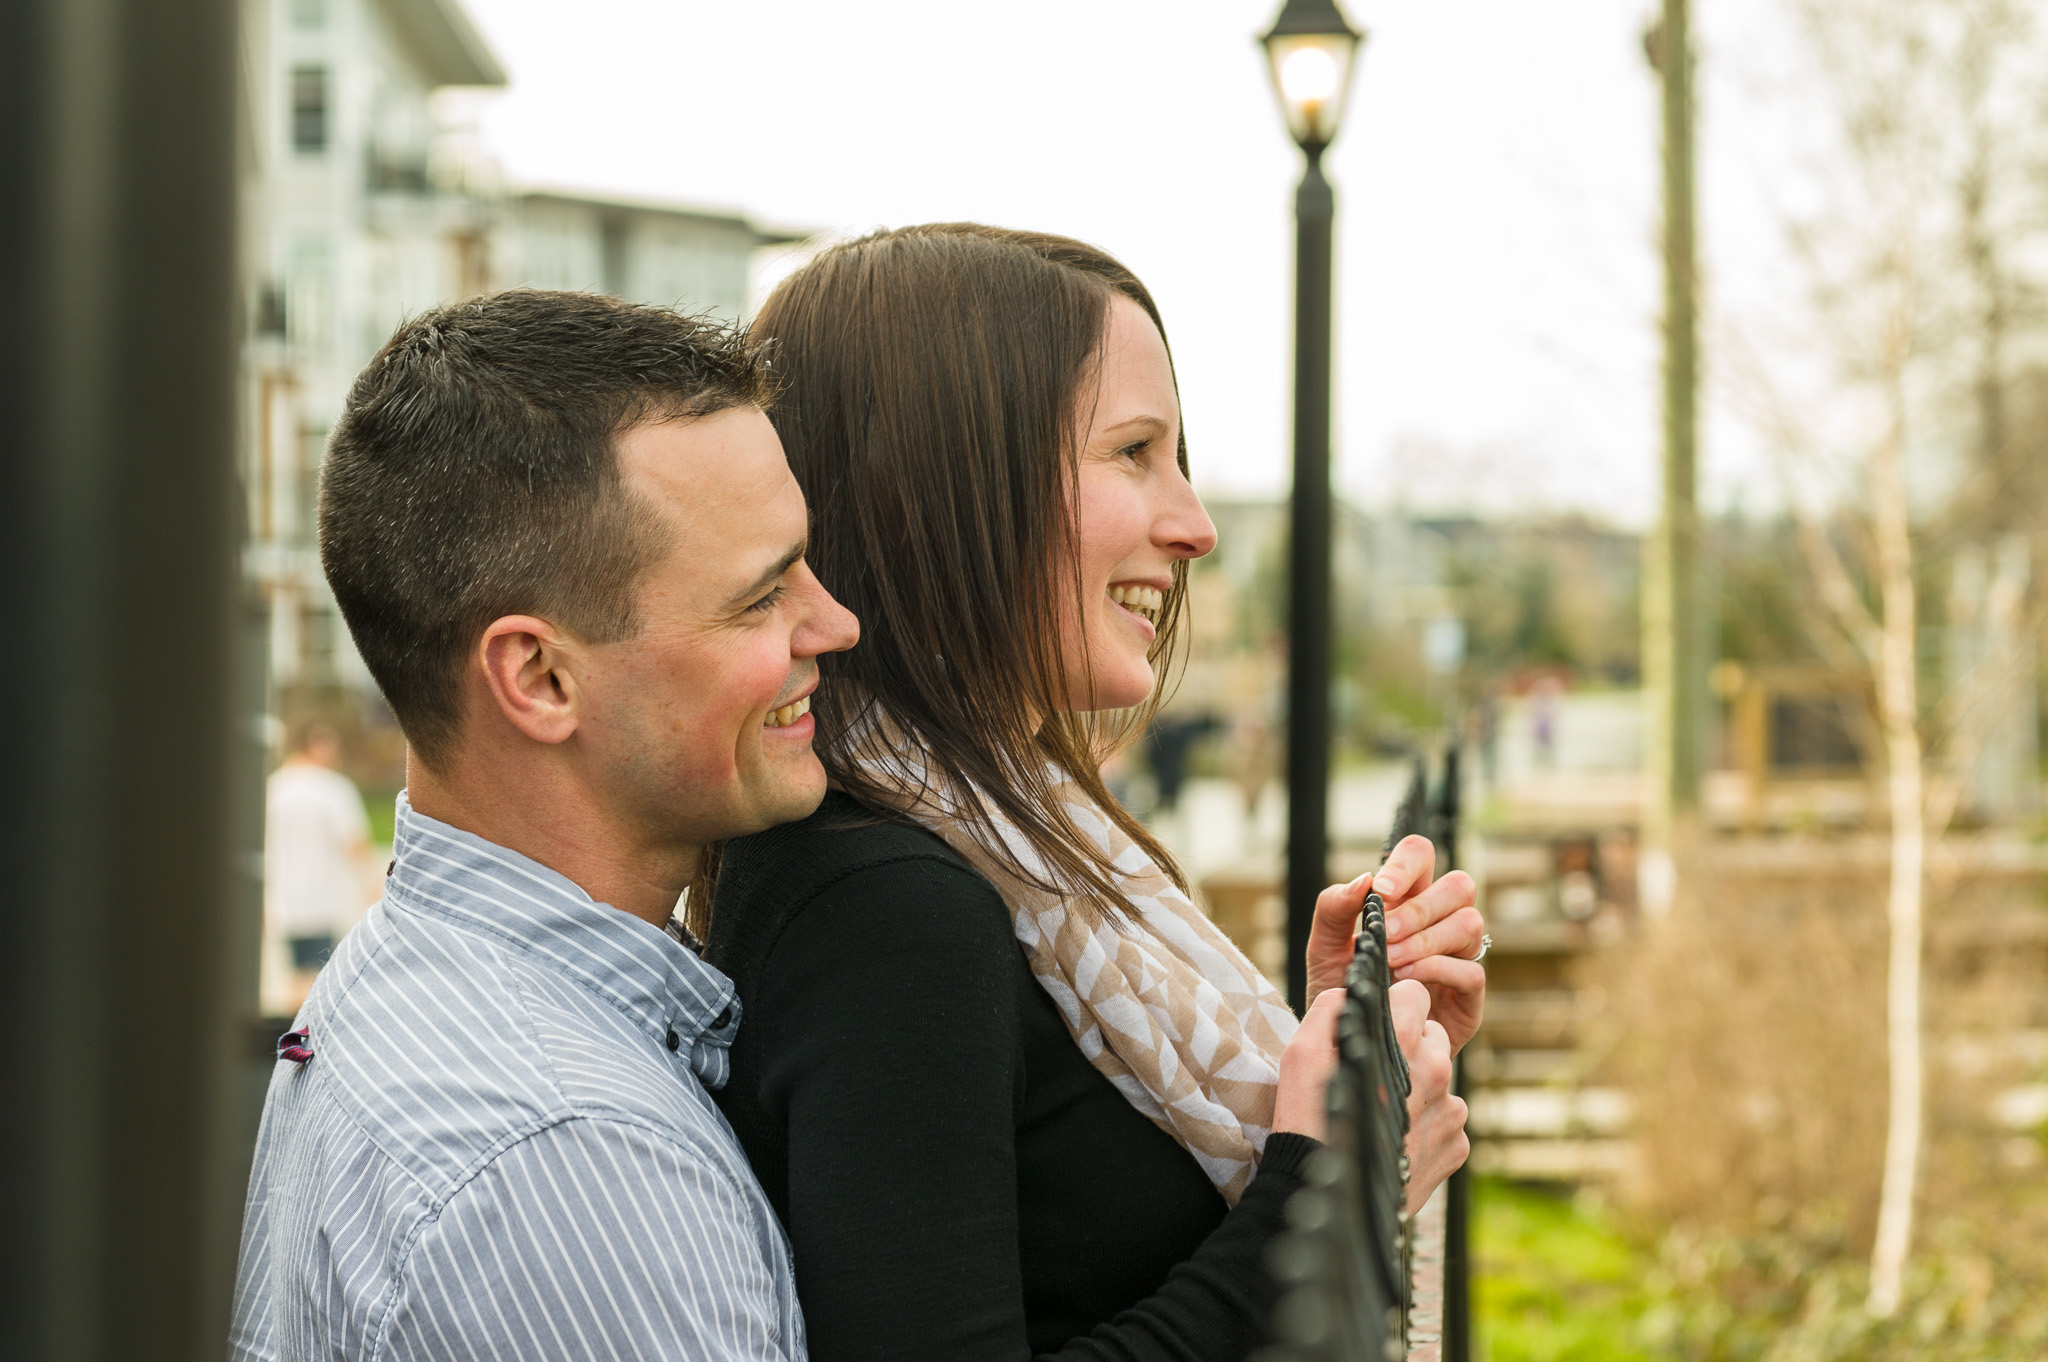 Engagement photography by Alan Bailward - http://bailwardphotography.com